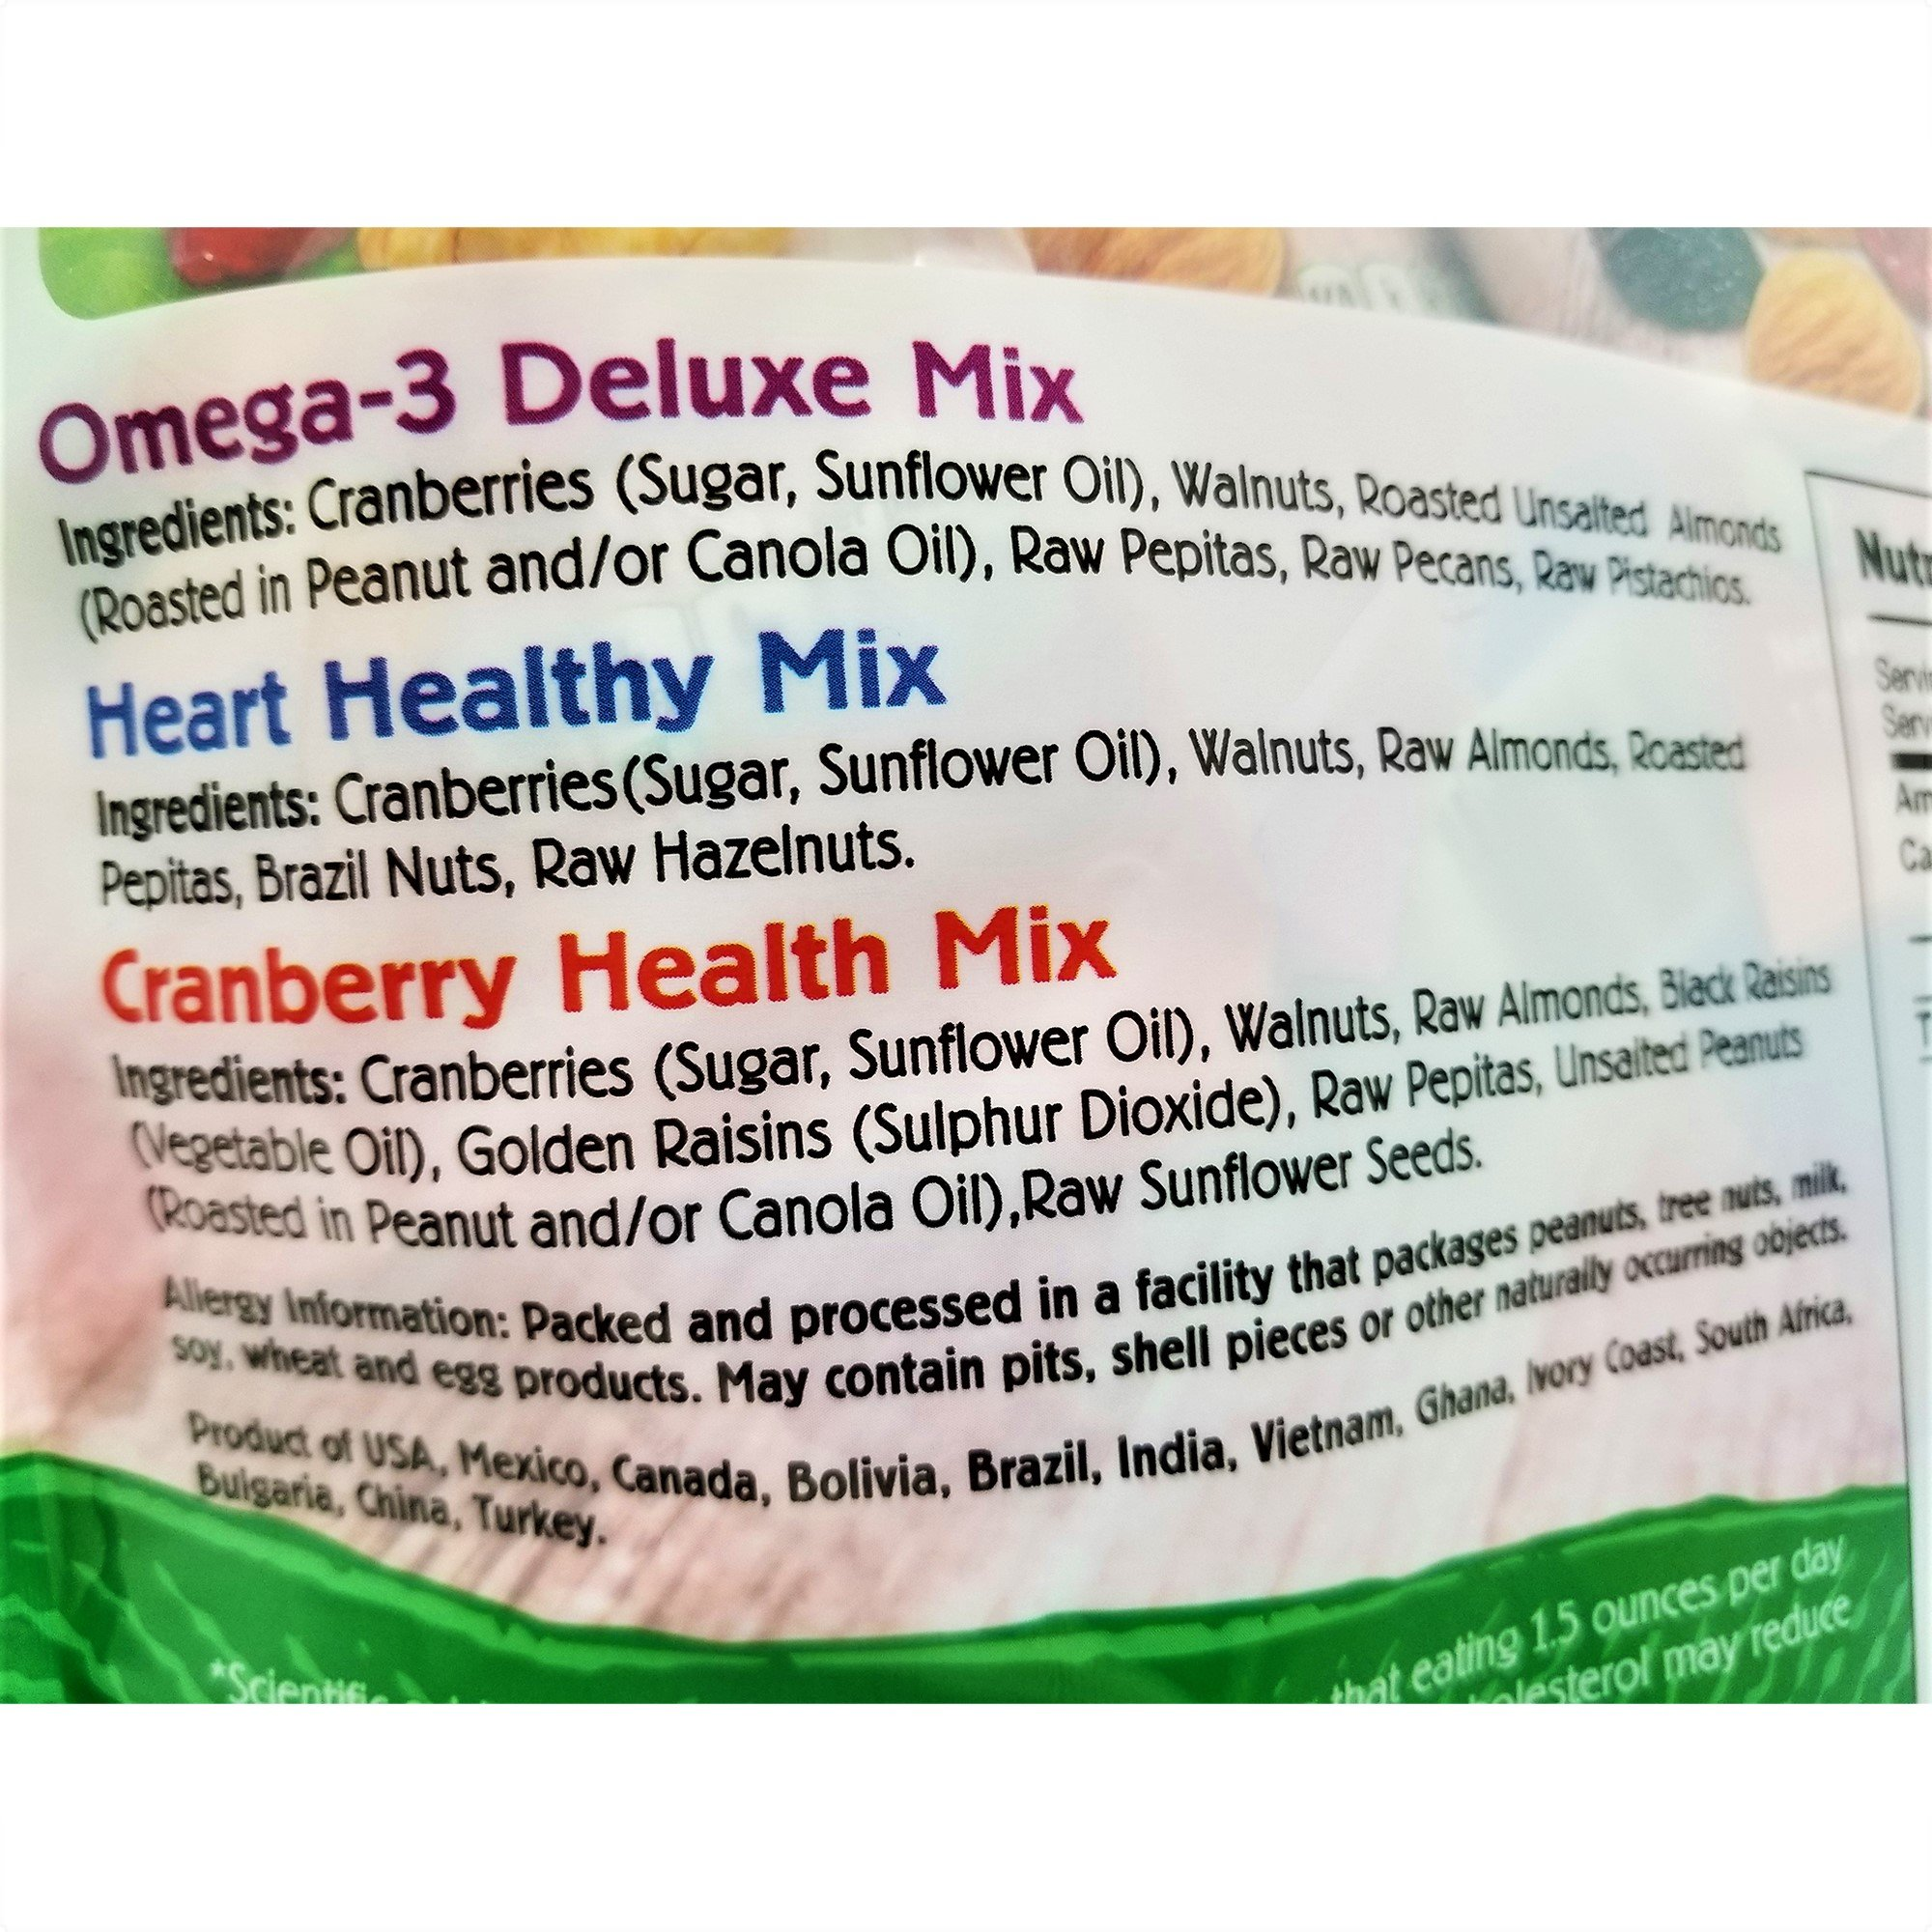 Nature's Garden Healthy Trail Mix Snack Packs 1.2 oz, Pack of 24 (Total 28.8 oz) by Nature's Garden (Image #3)